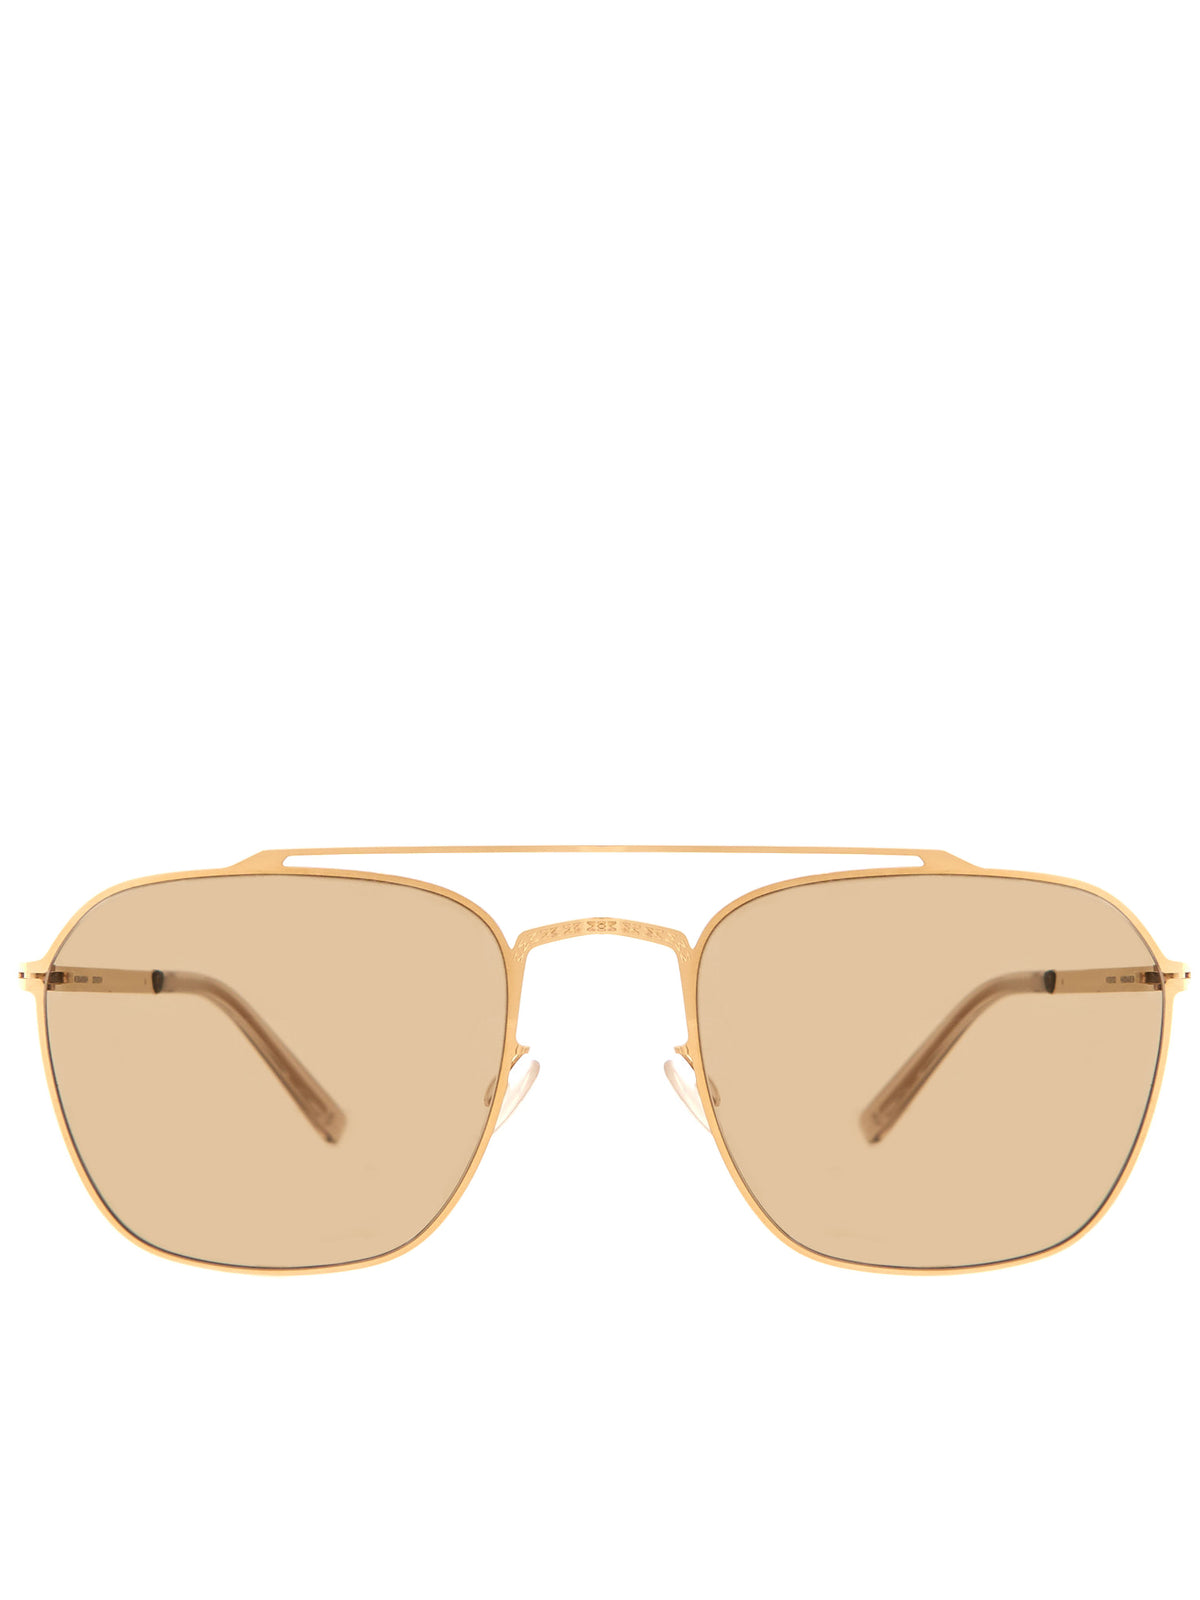 'MMCRAFT006' Sunglasses (MMCRAFT006-GLOSSYGOLD-BROWN)